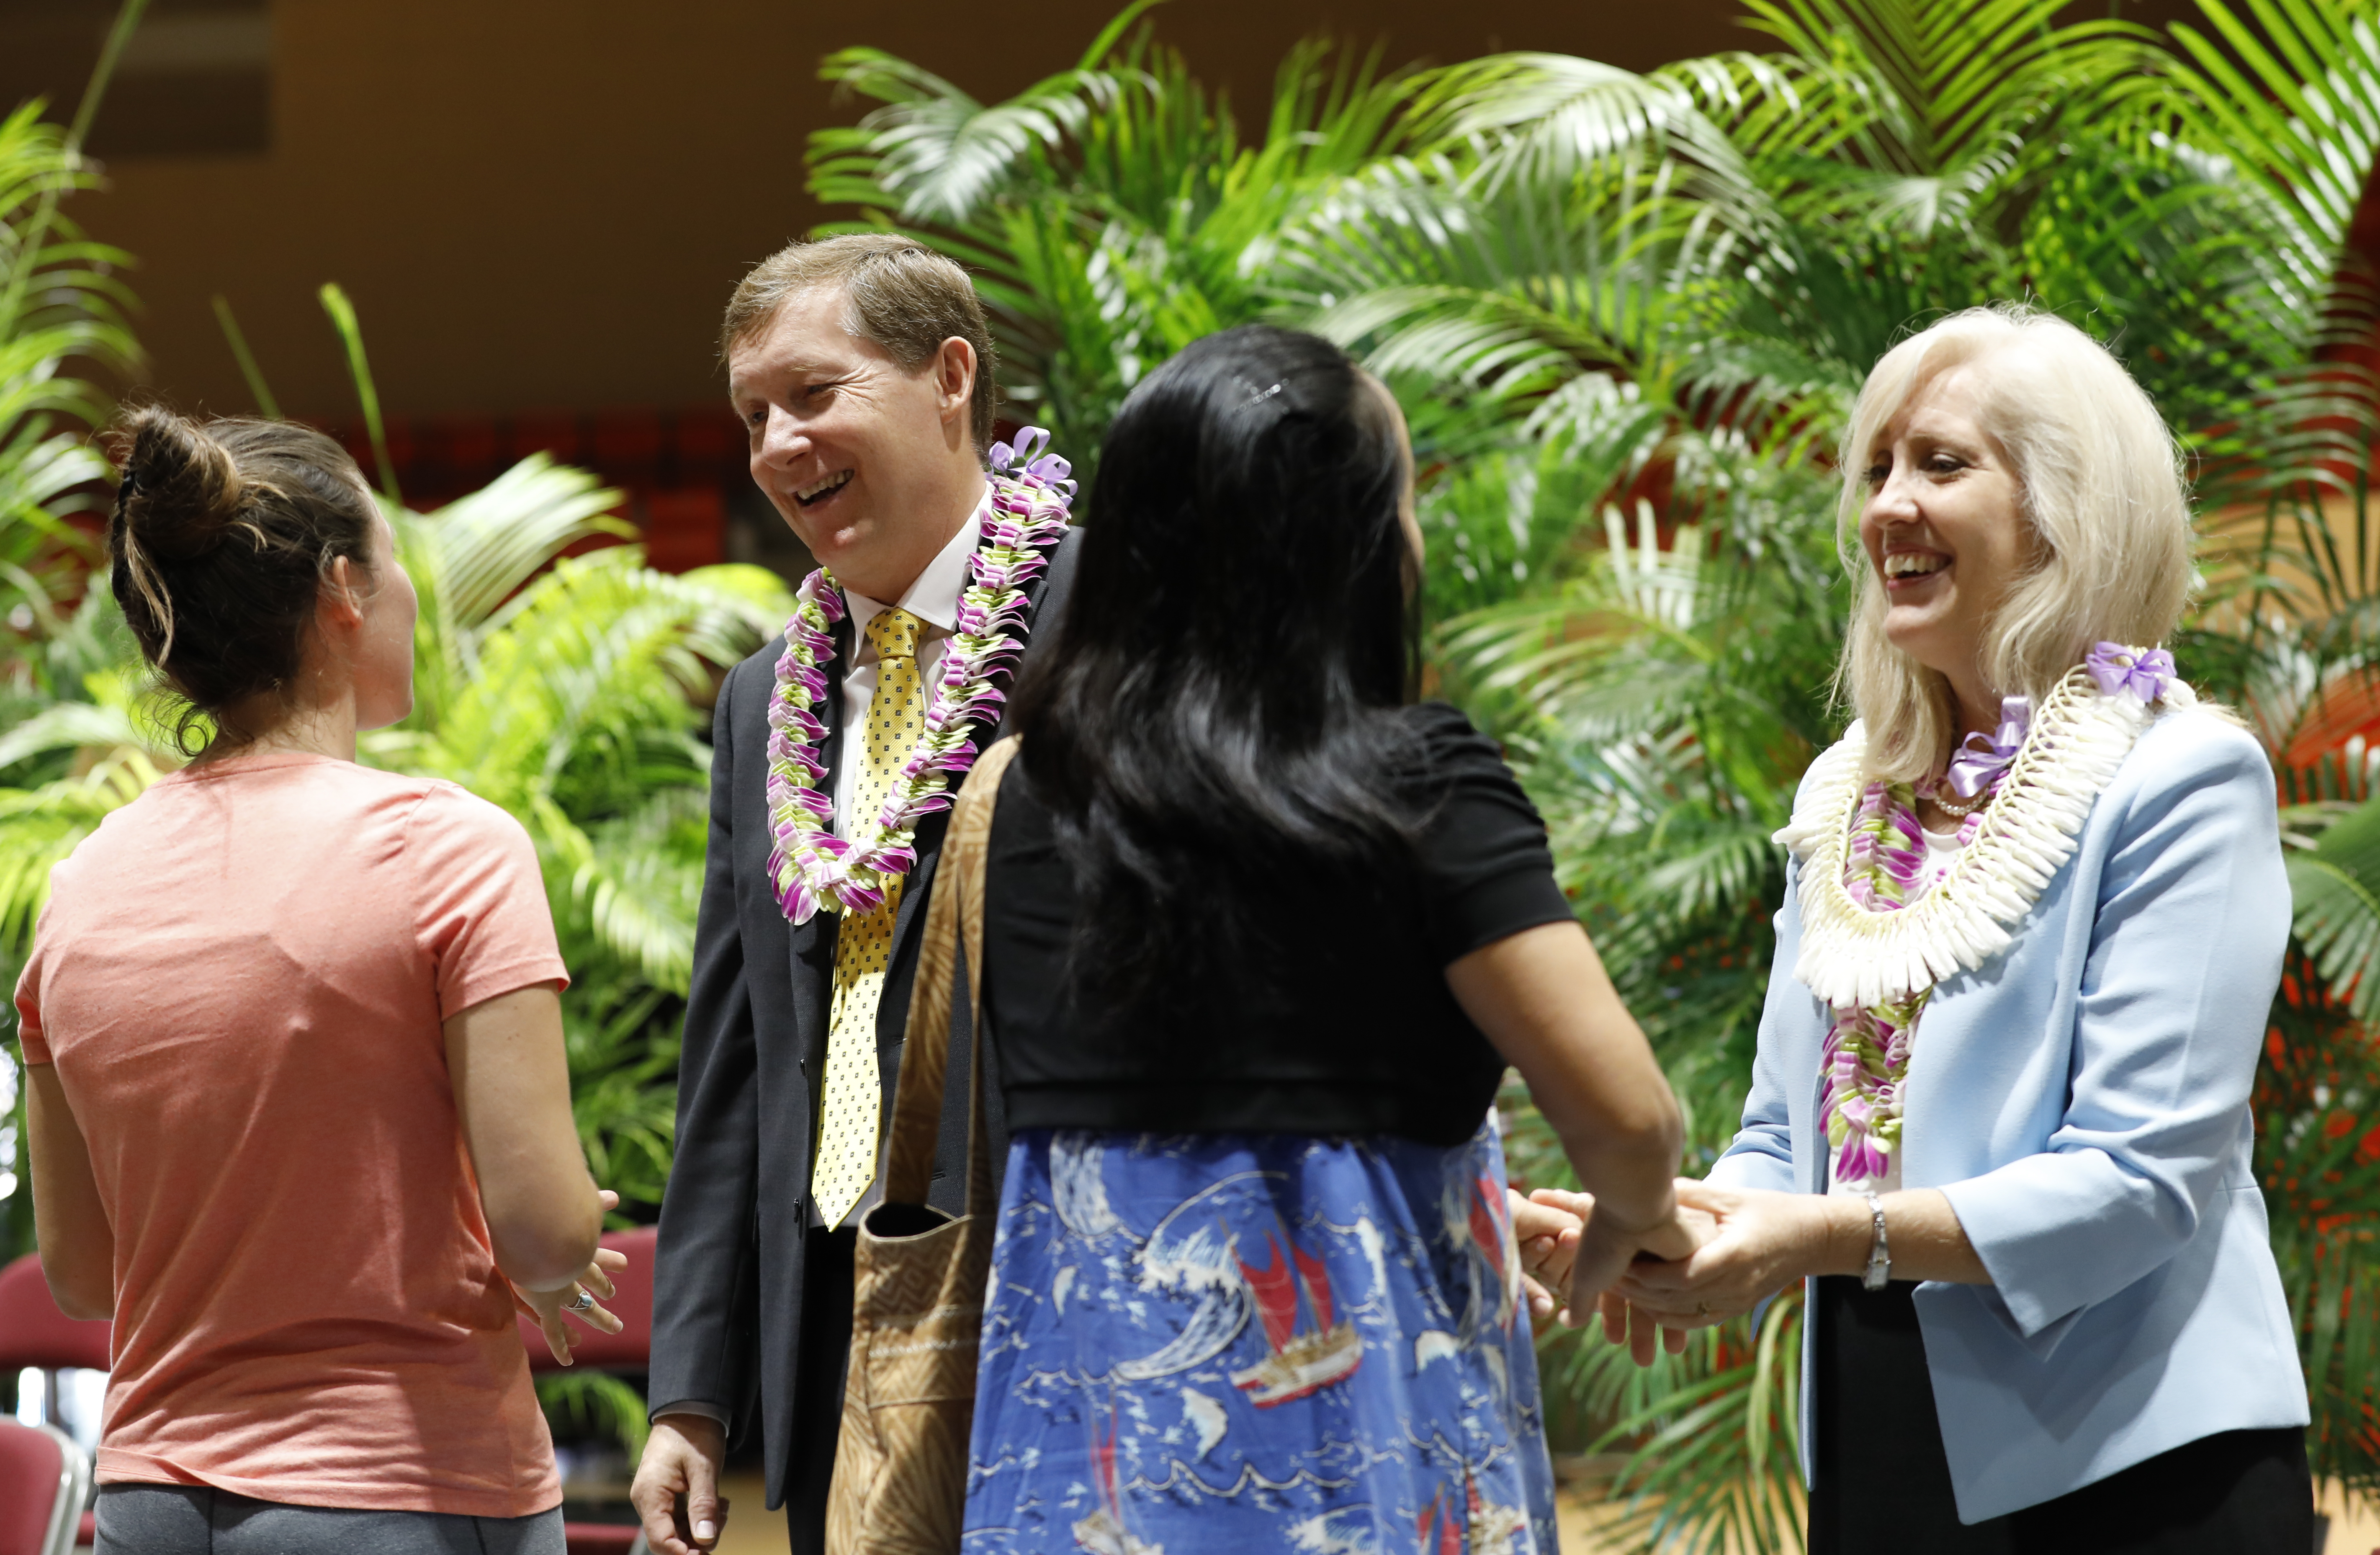 Elder L. Todd Budge greets students following his devotional address at BYU-Hawaii on Tuesday, Sept. 24, 2019.